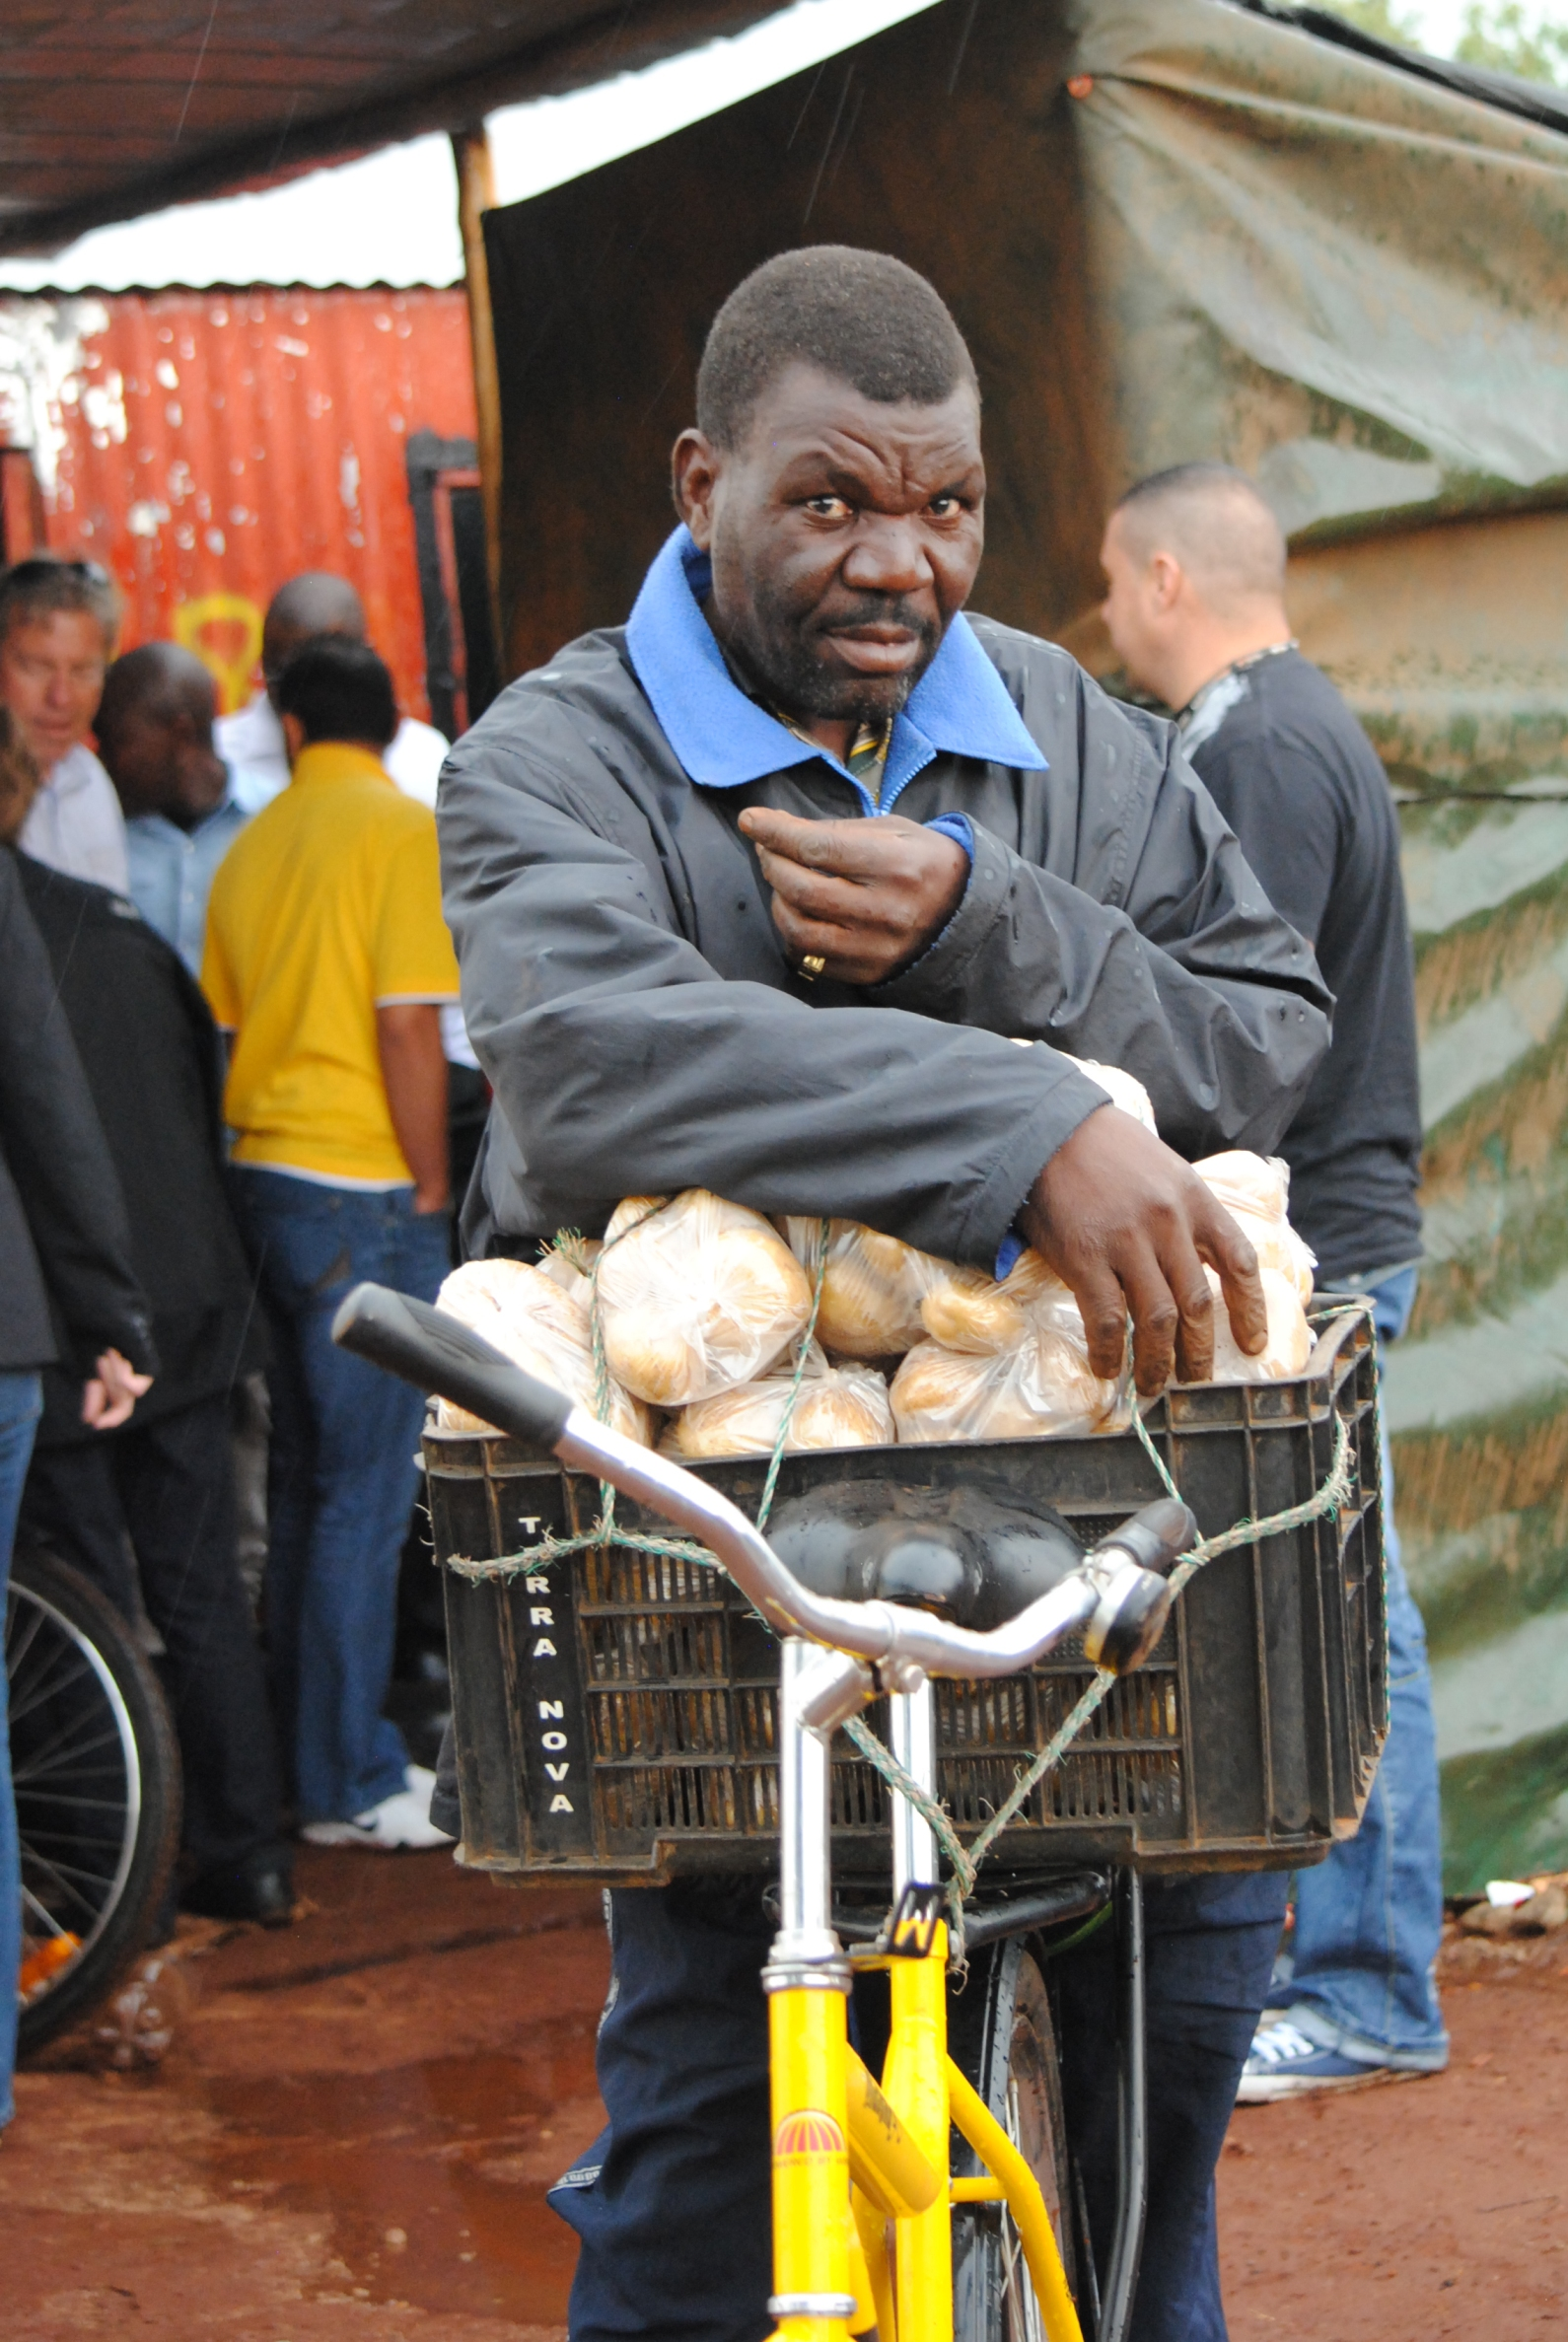 This man and his son grow potatoes, which they then load on their bicycles and sell at the local market